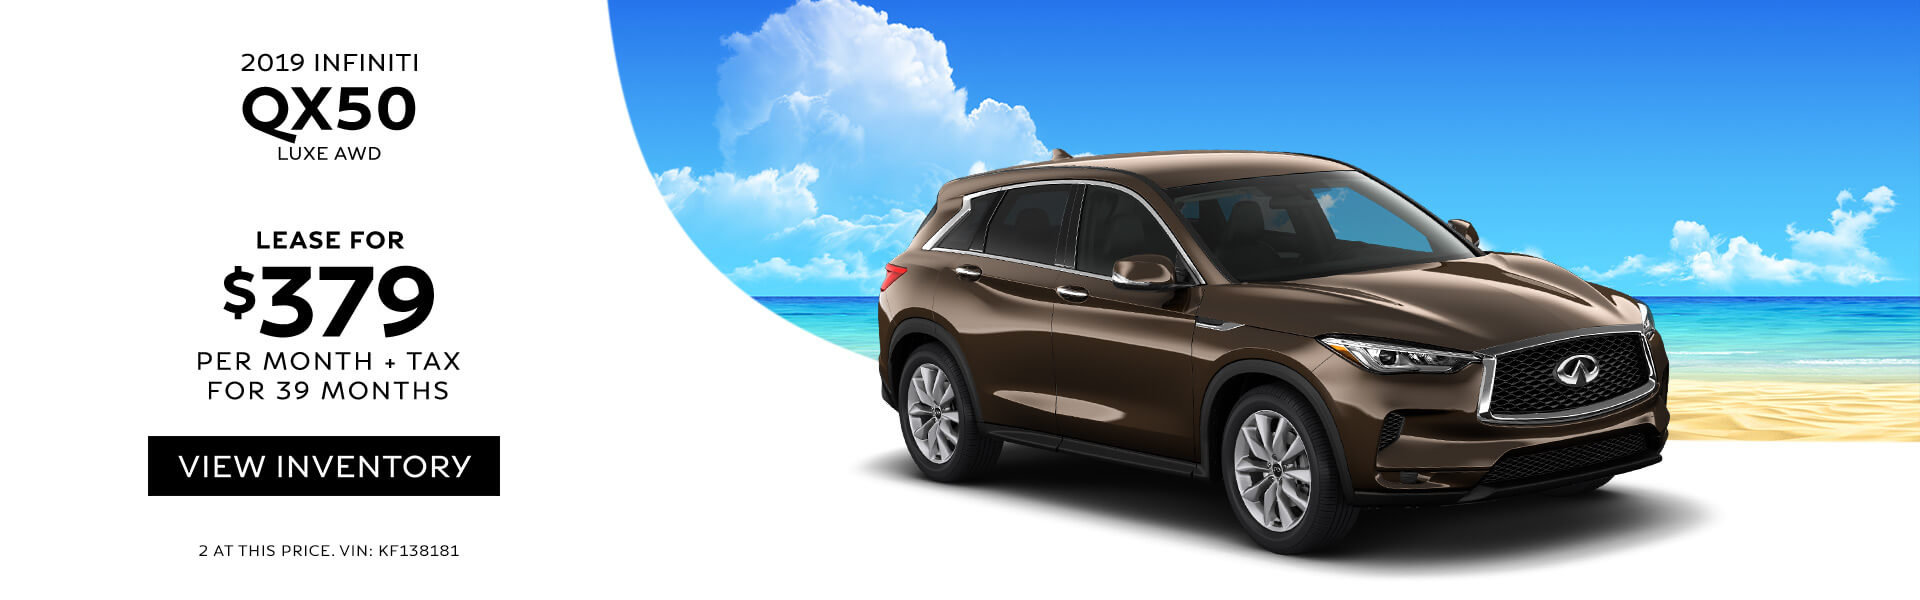 QX50 Lease for 379